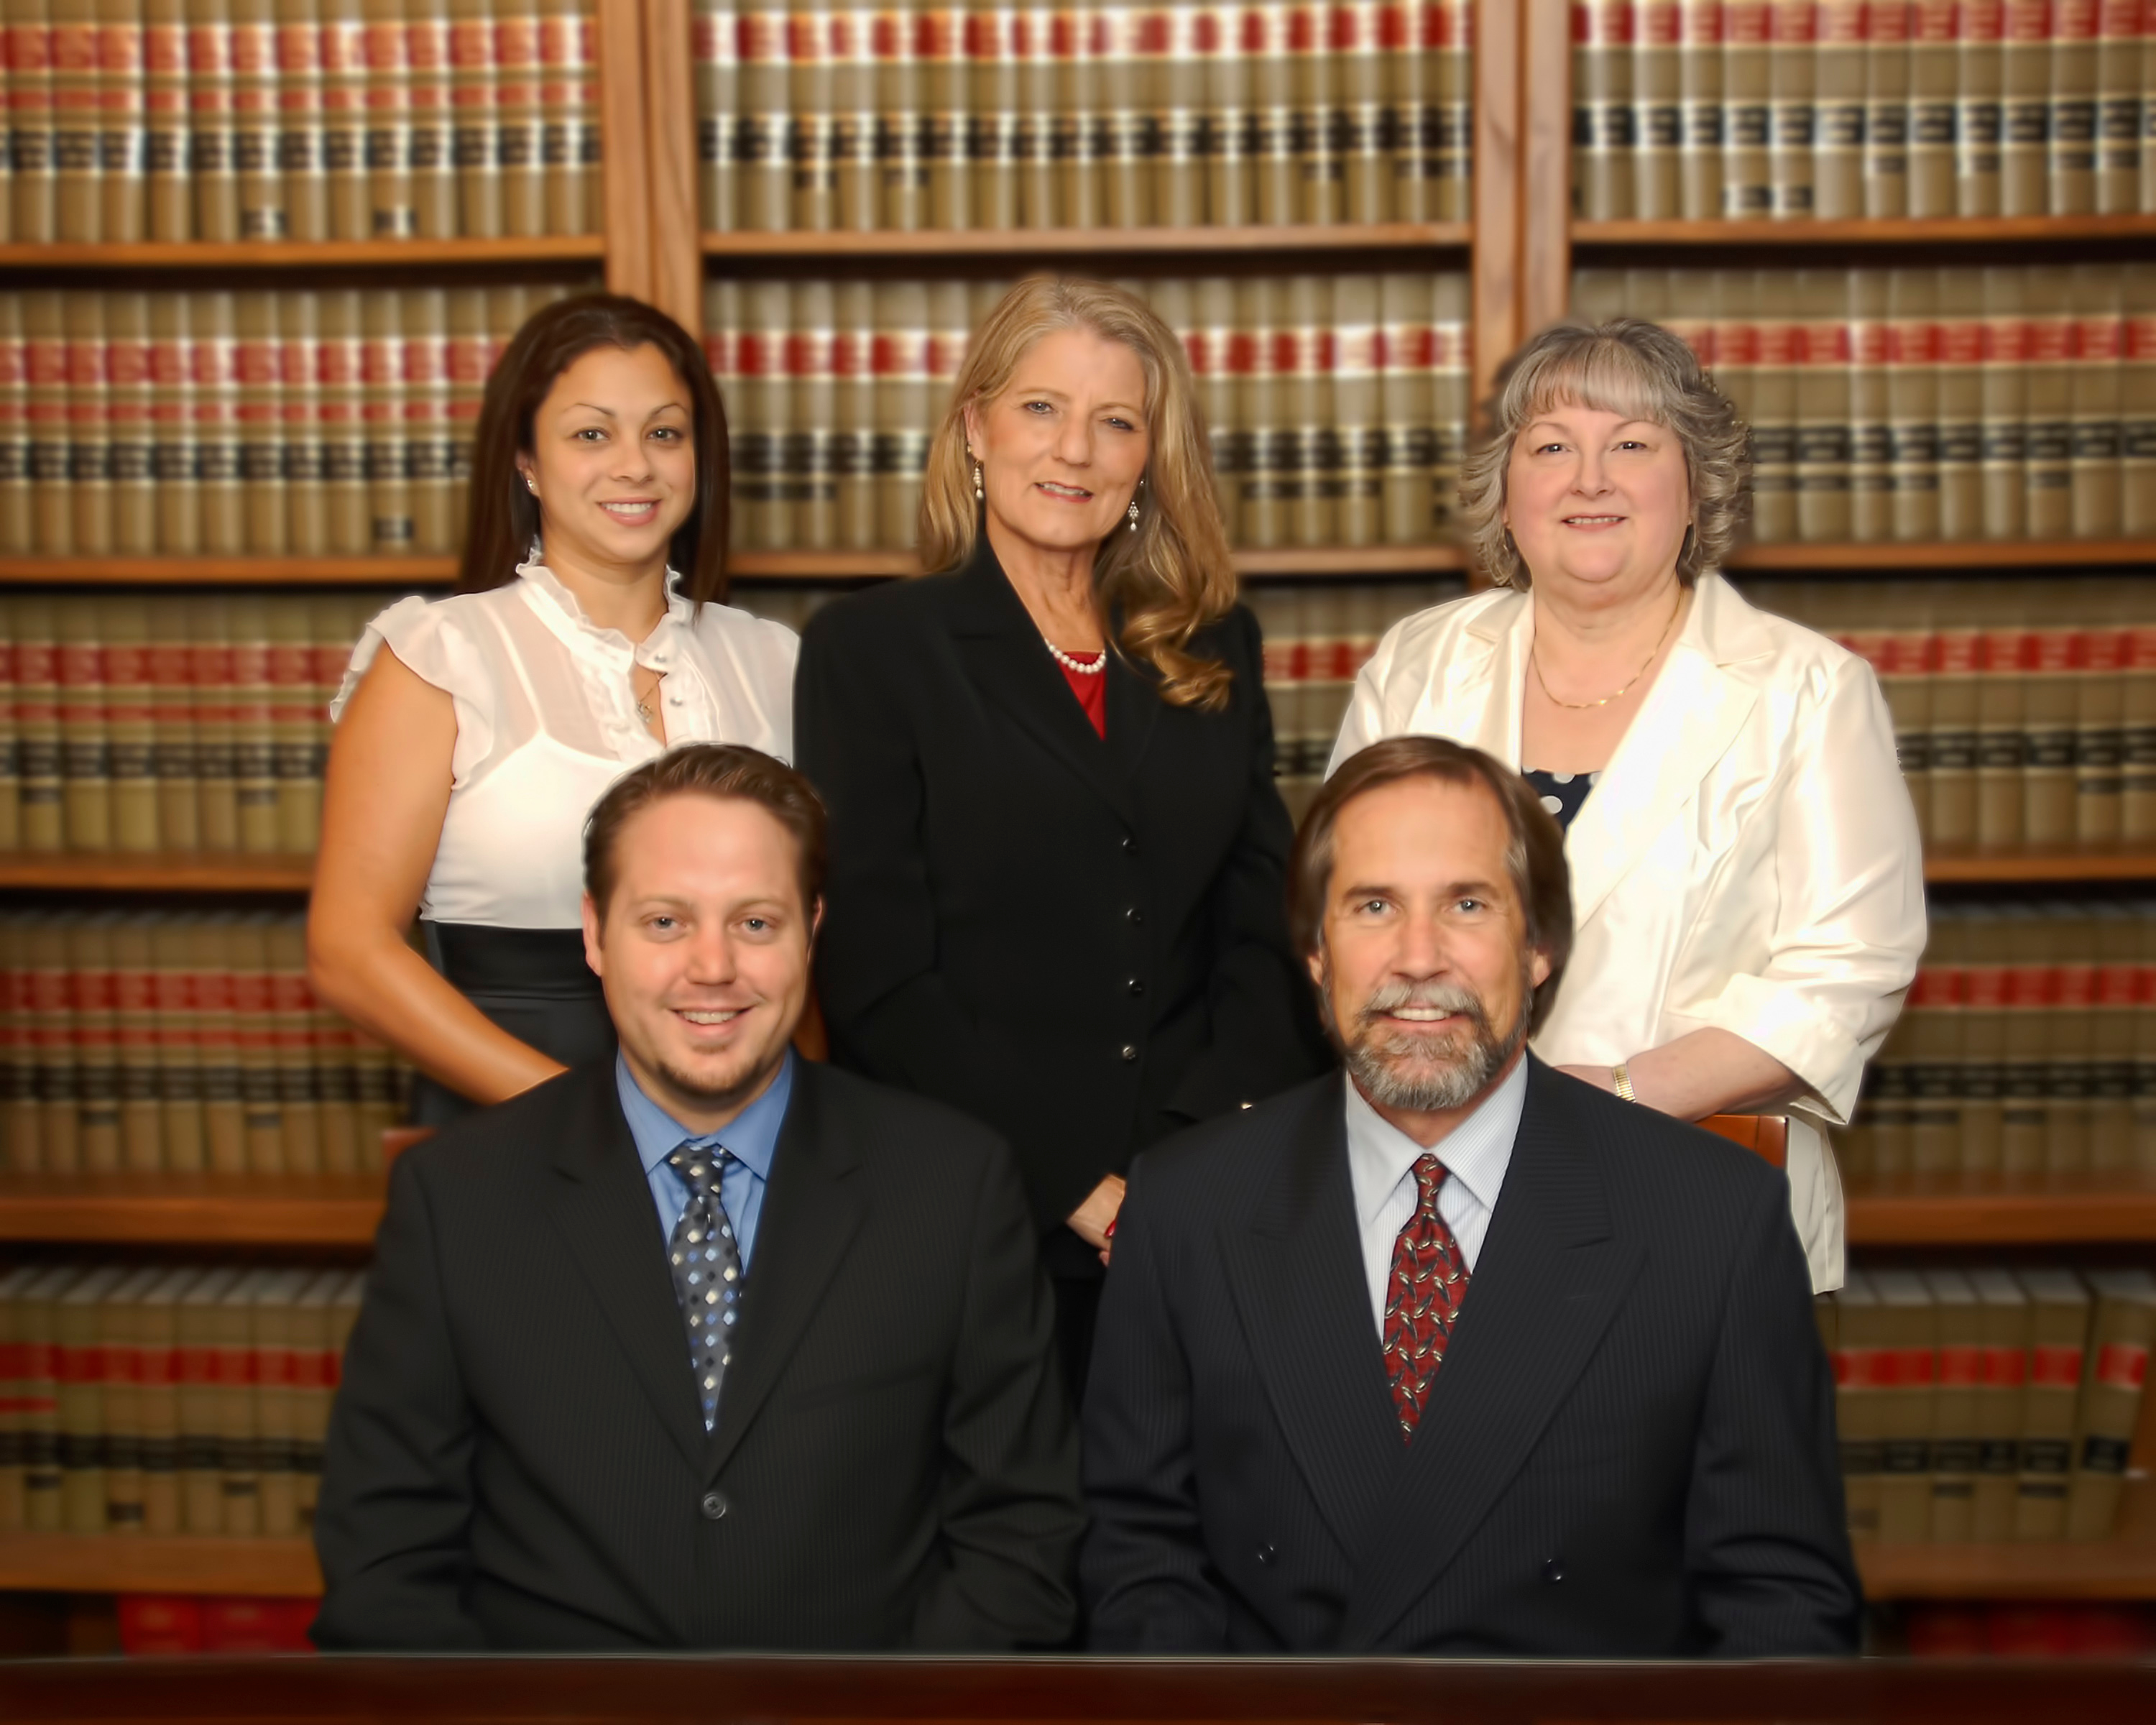 Law Offices of G. David Smith, P.C. - ad image